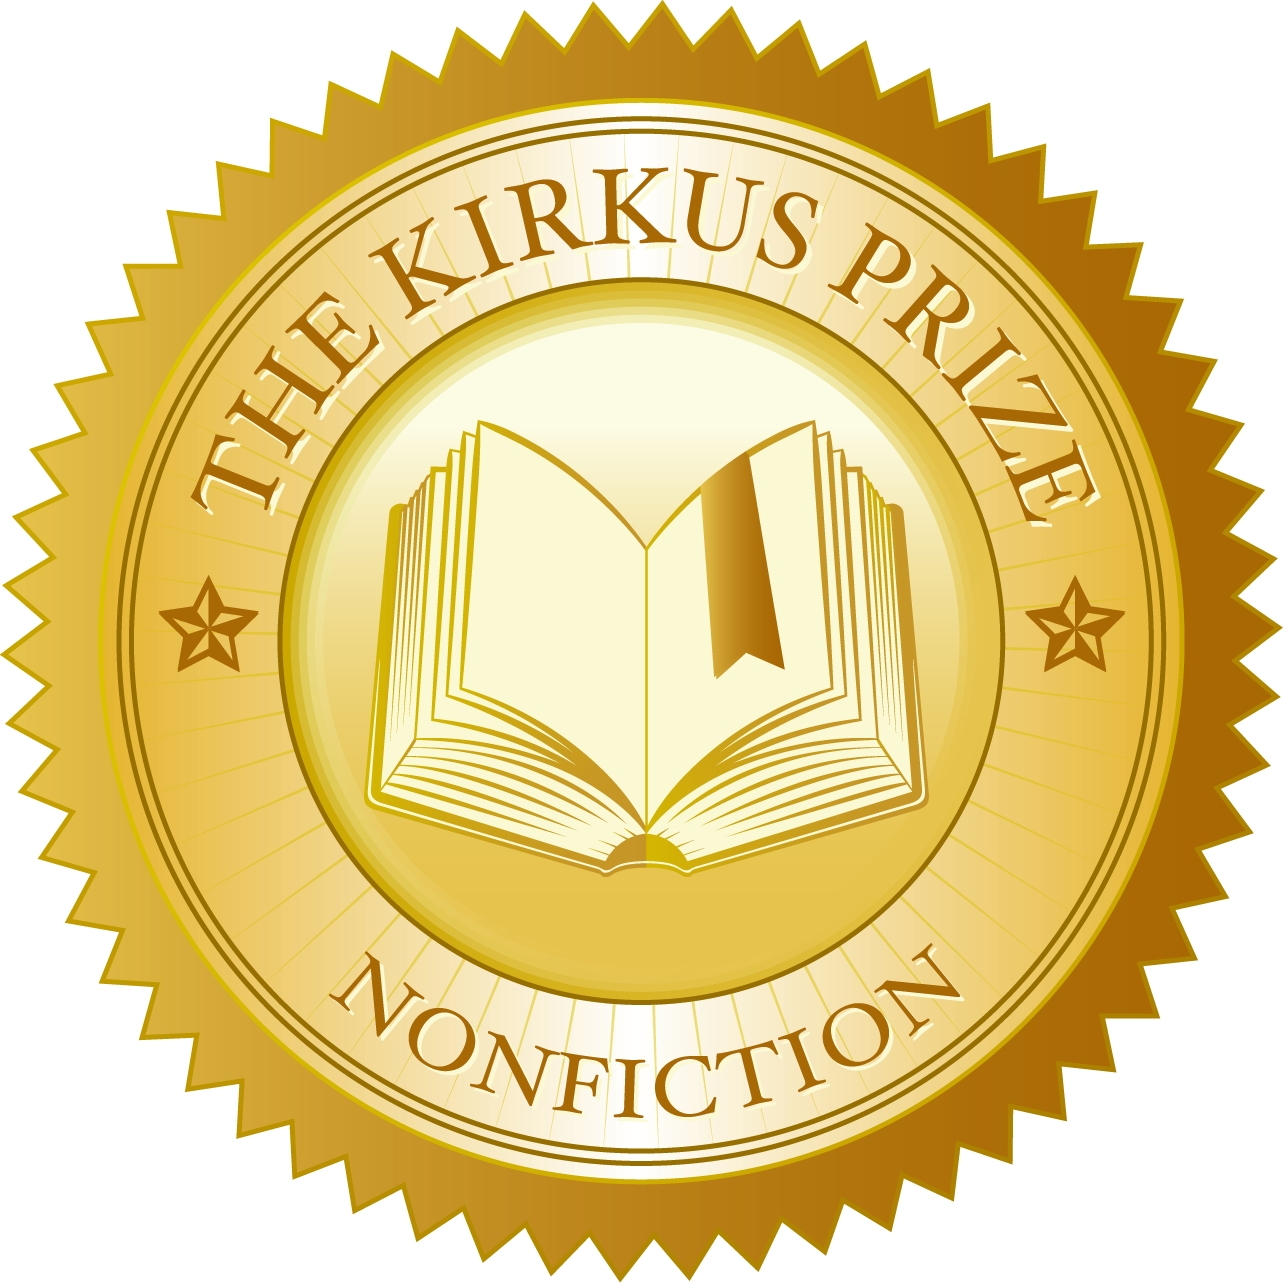 Behind the Scenes at the 2014 Kirkus Prize for Nonfiction